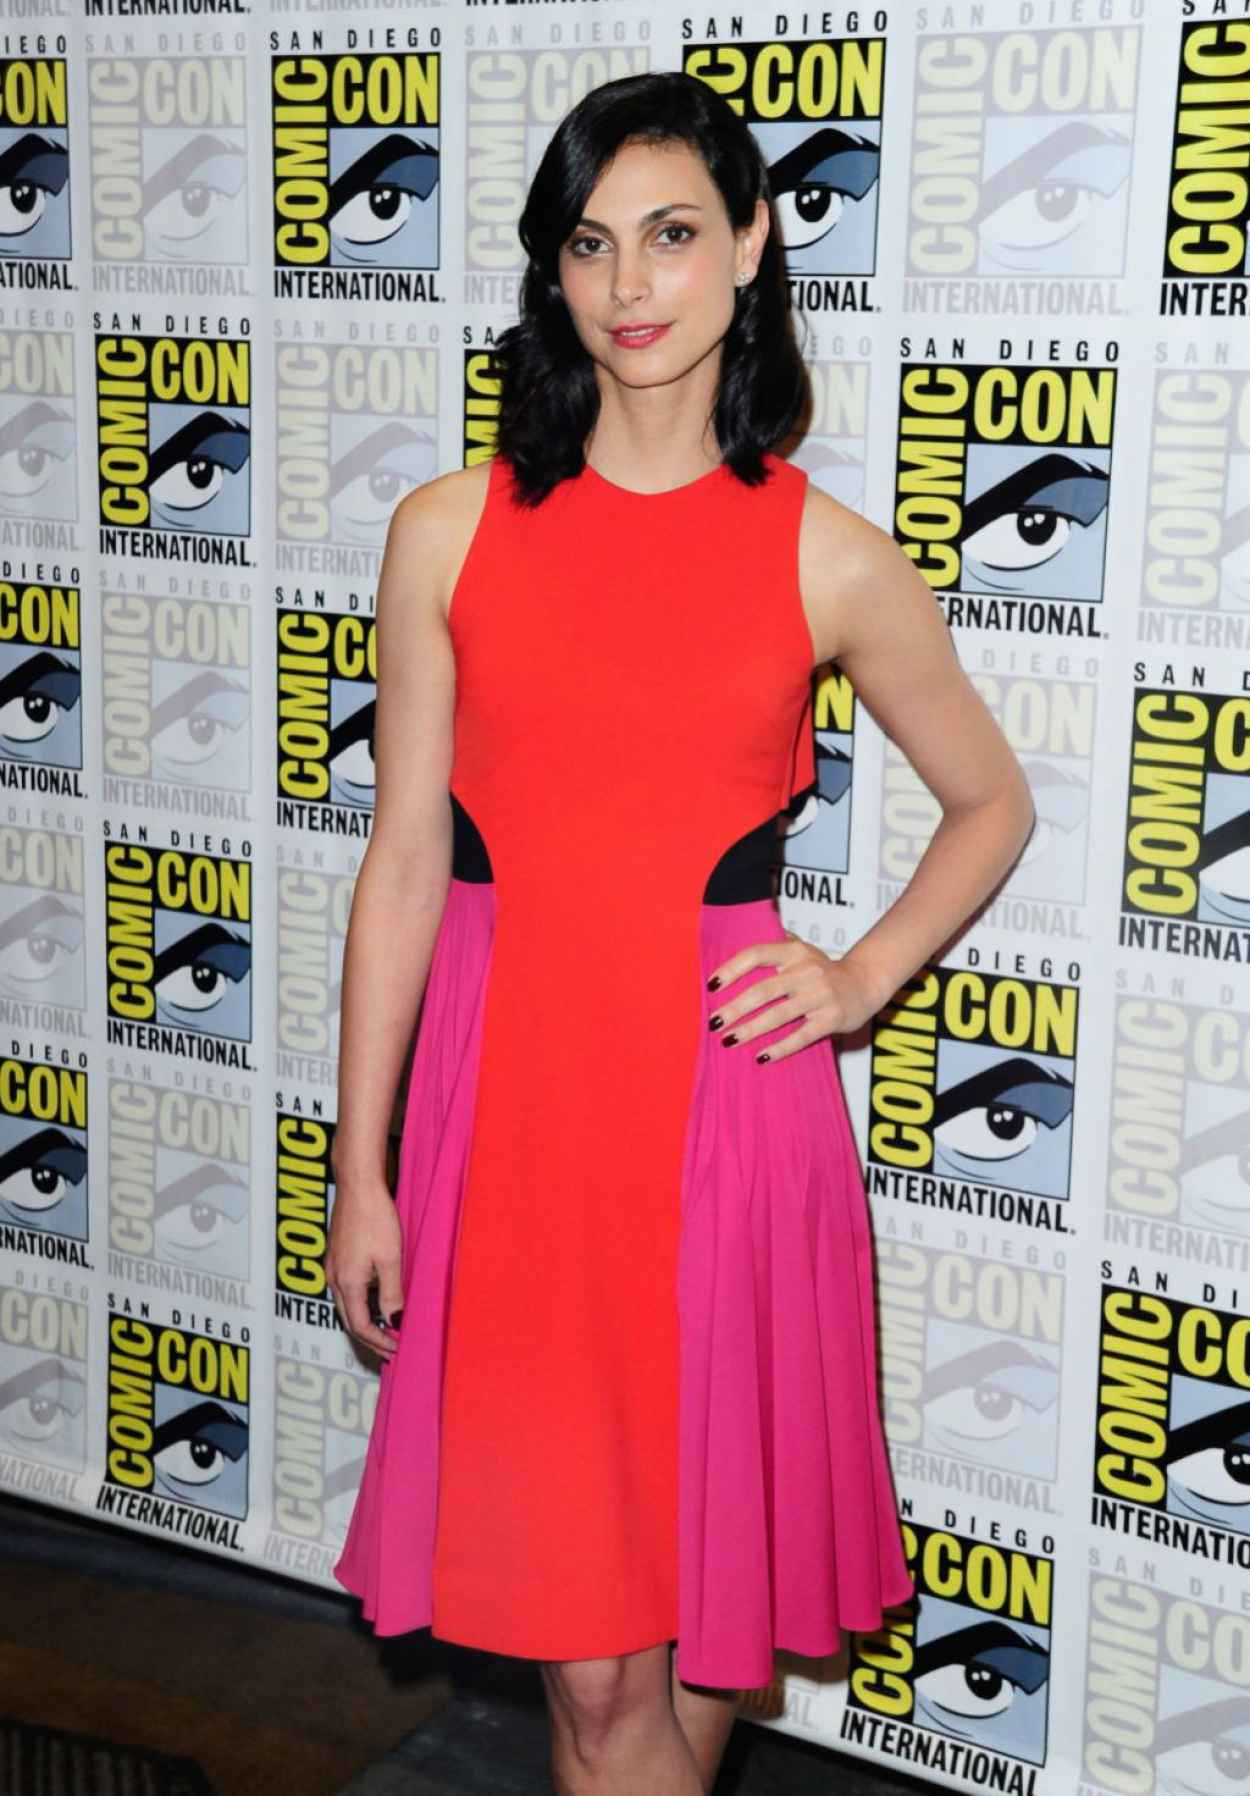 Morena Baccarin - Gotham Press Line at Comic Con in San Diego-3